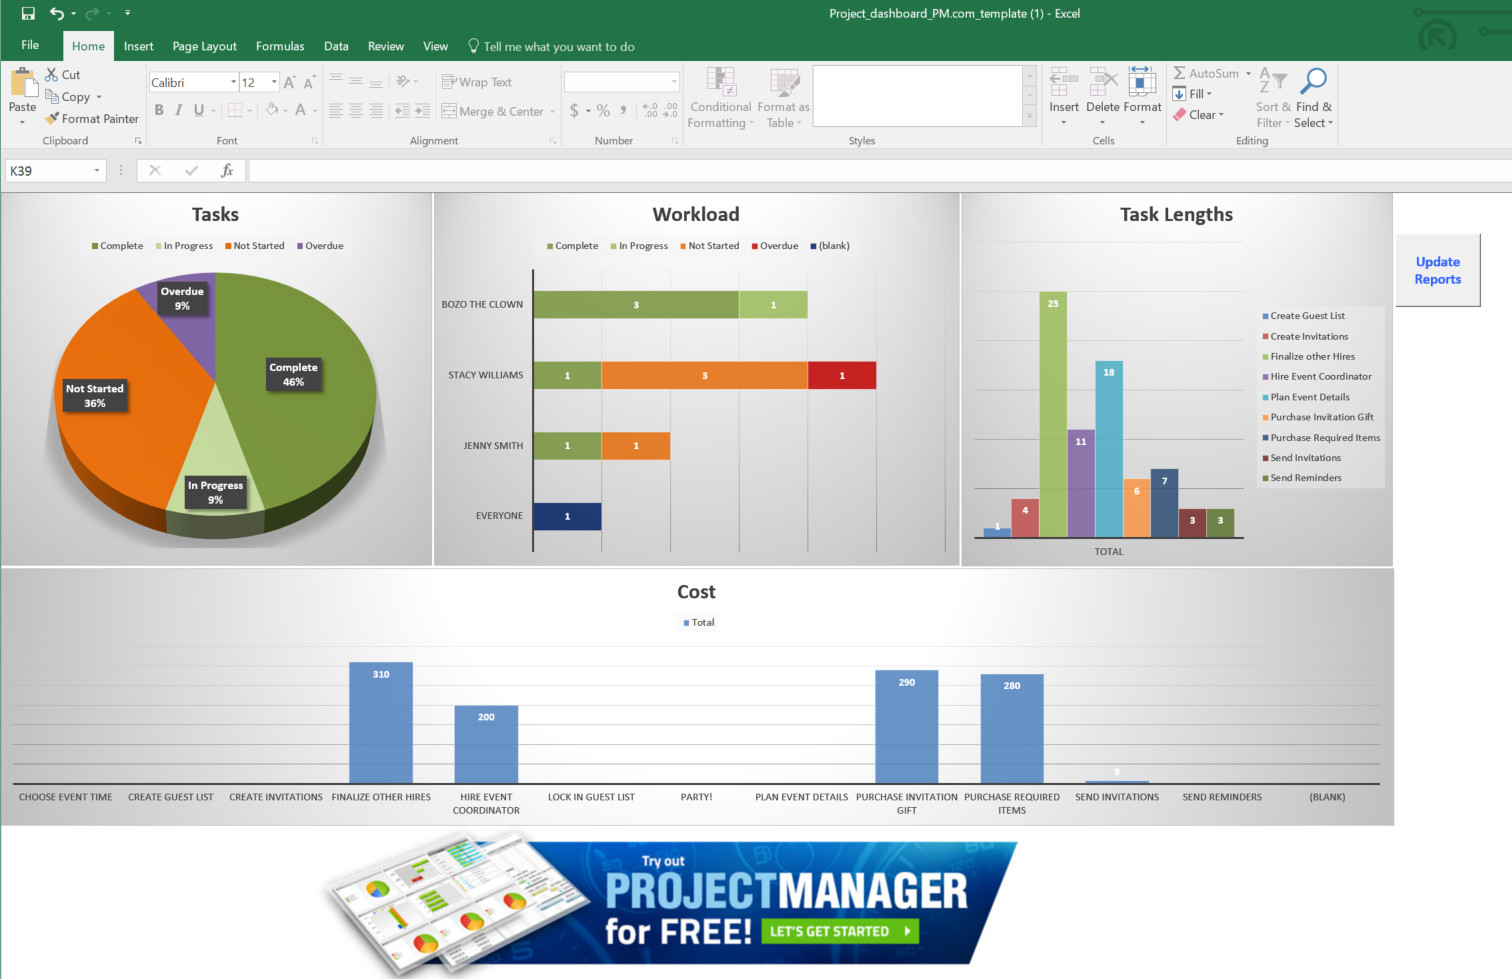 Guide To Excel Project Management - Projectmanager inside Excel Project Management Spreadsheet